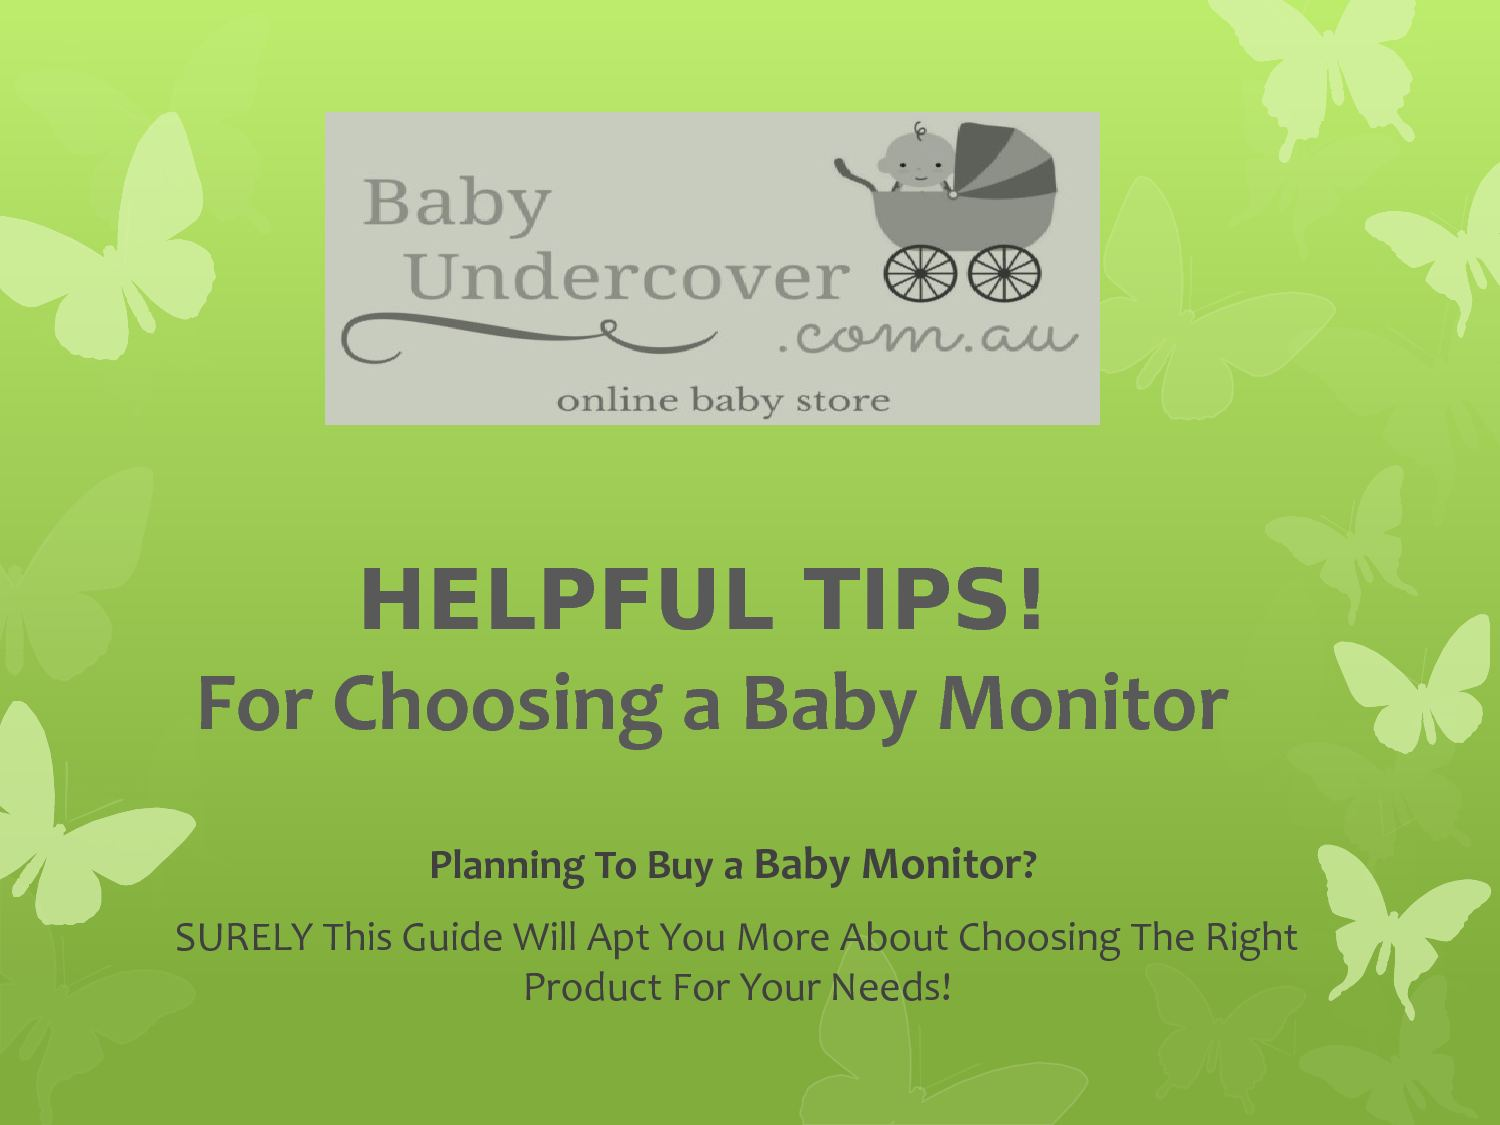 HELPFUL TIPS! For Choosing a Baby Monitor